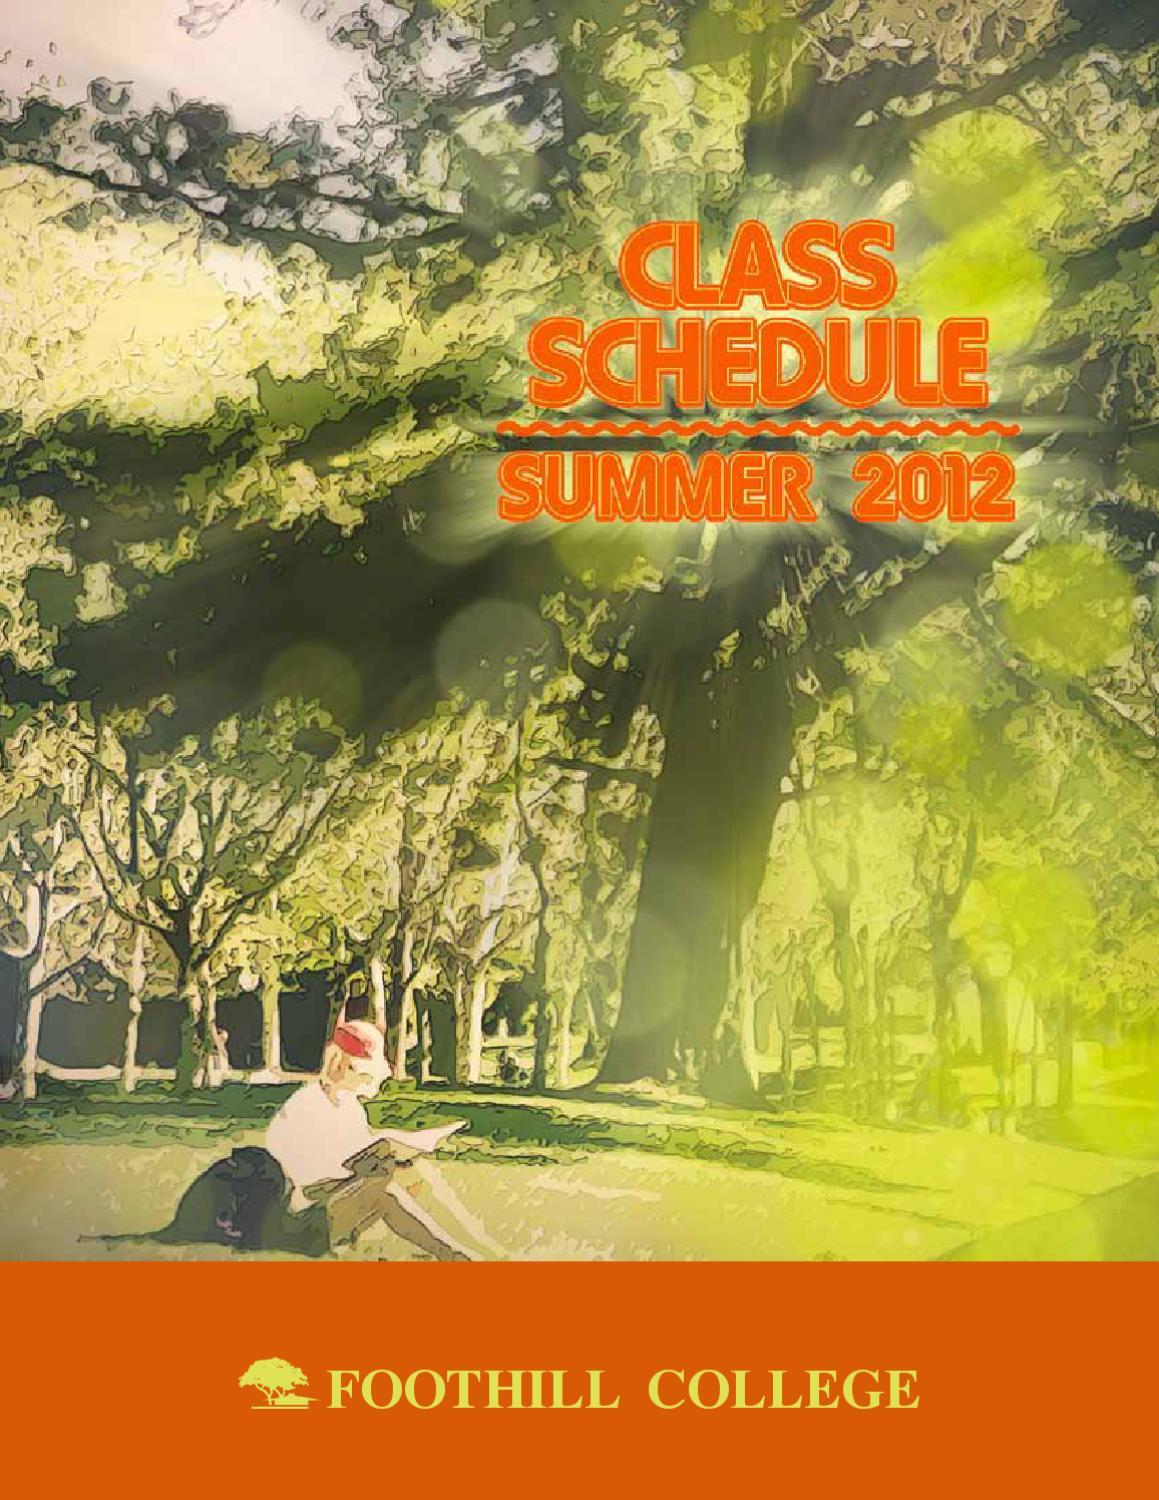 Summer Schedule 2012 By Foothill College Issuu Free Tree Diagram Generator 10159 Download